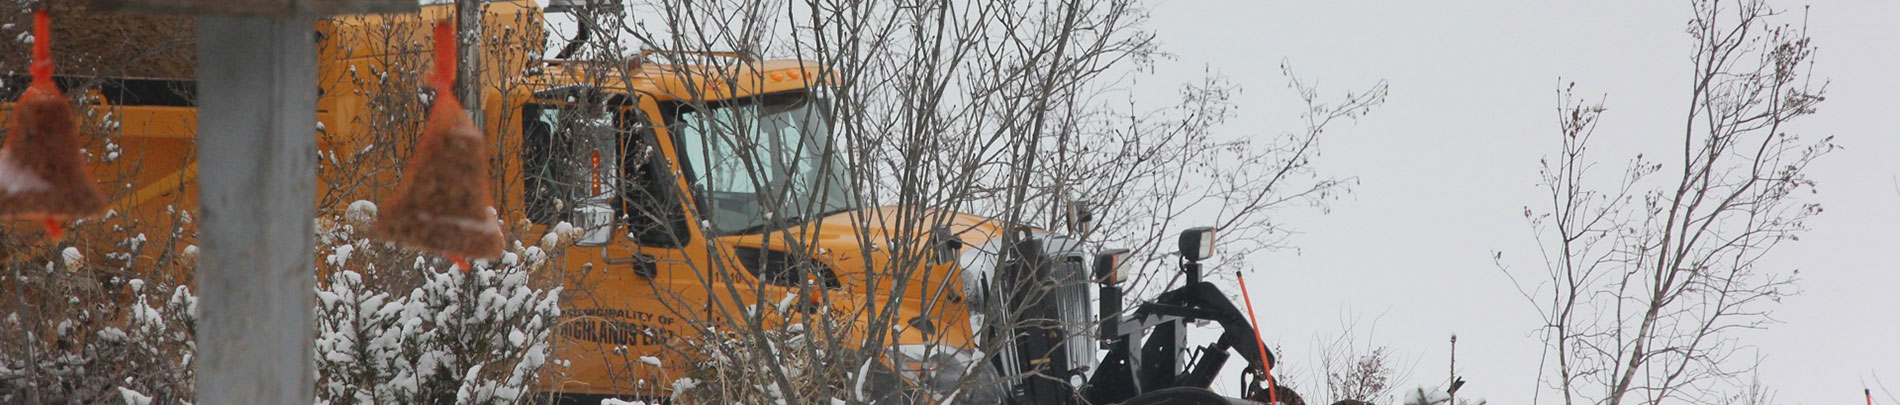 A Highlands East snow plow drives by plowing snow off the road.